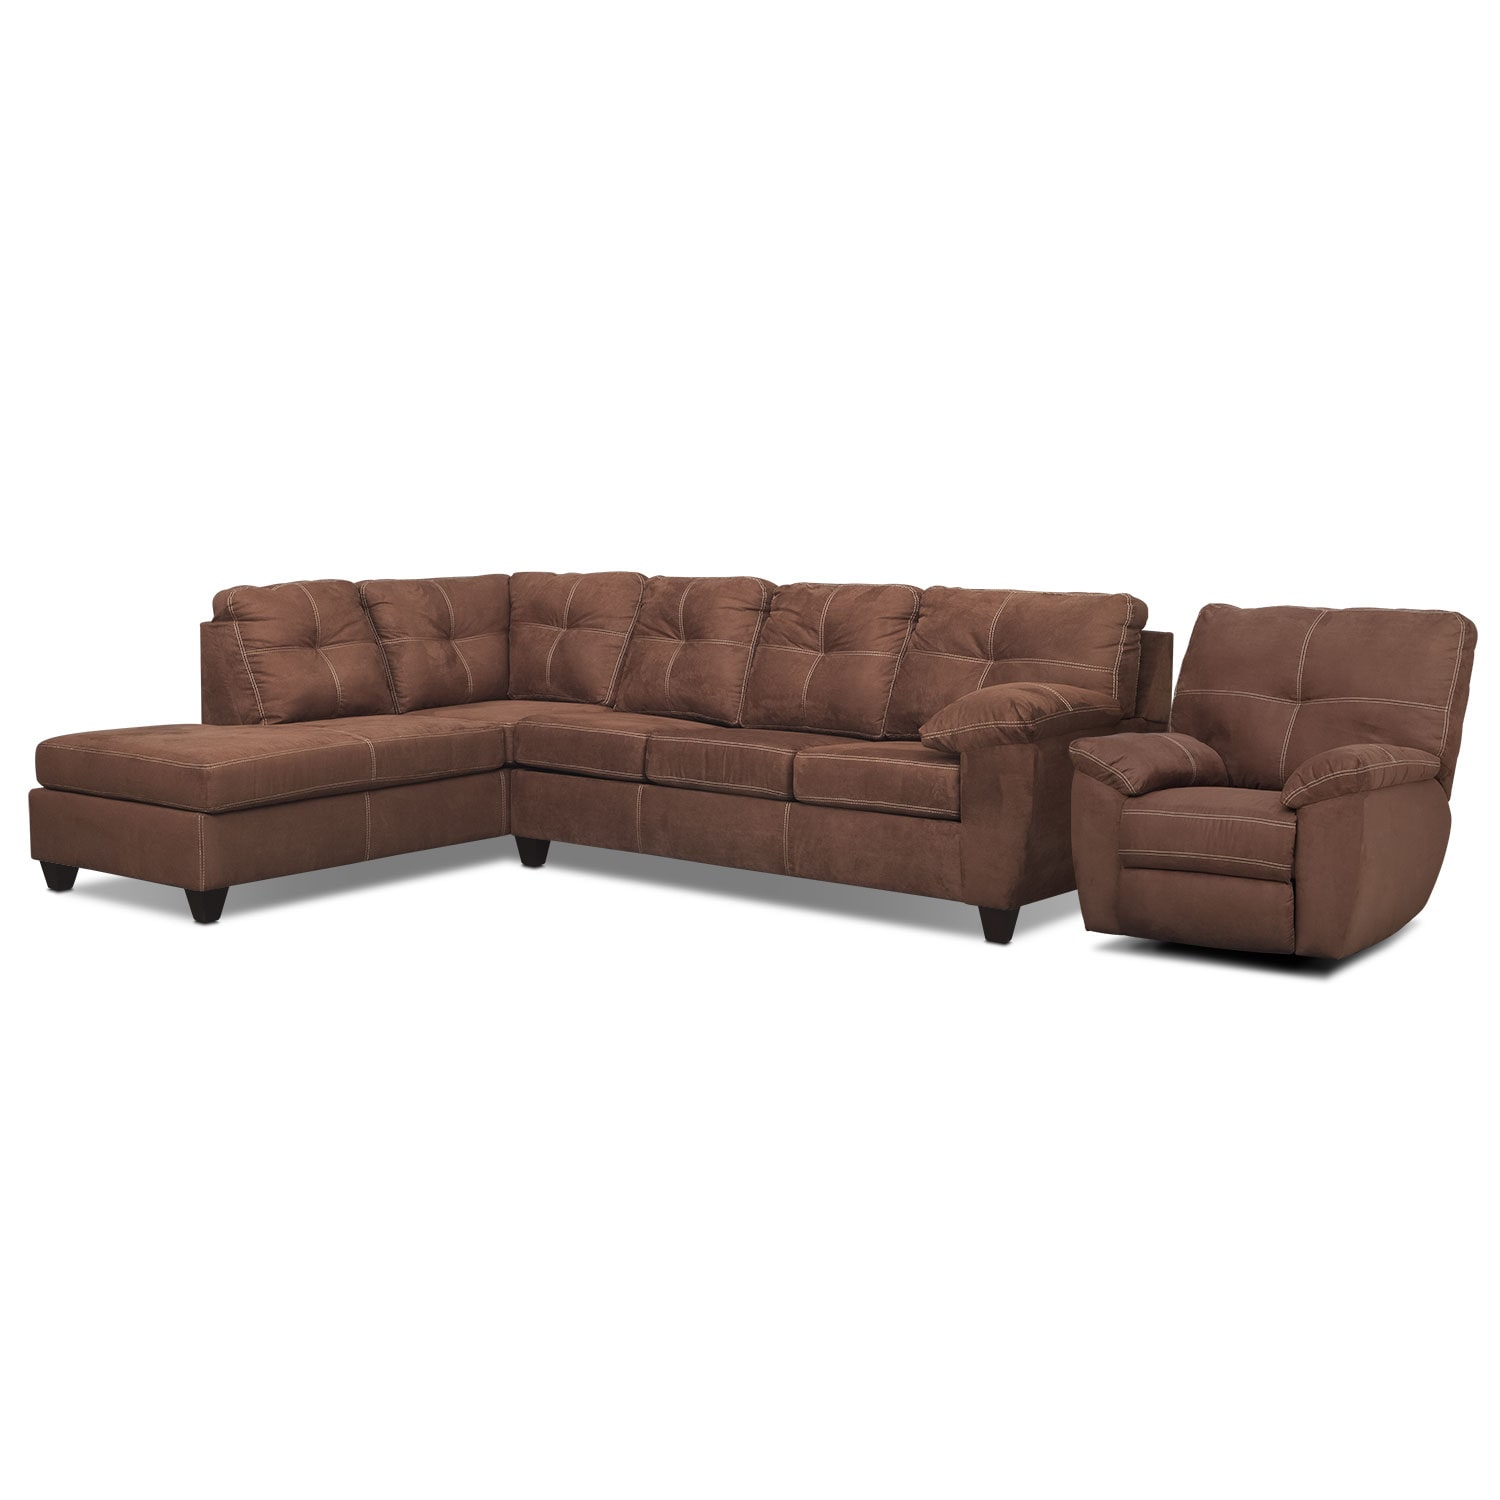 Living Room Furniture - Rialto 2-Piece Sectional with Left-Facing Chaise and Glider Recliner Set - Coffee